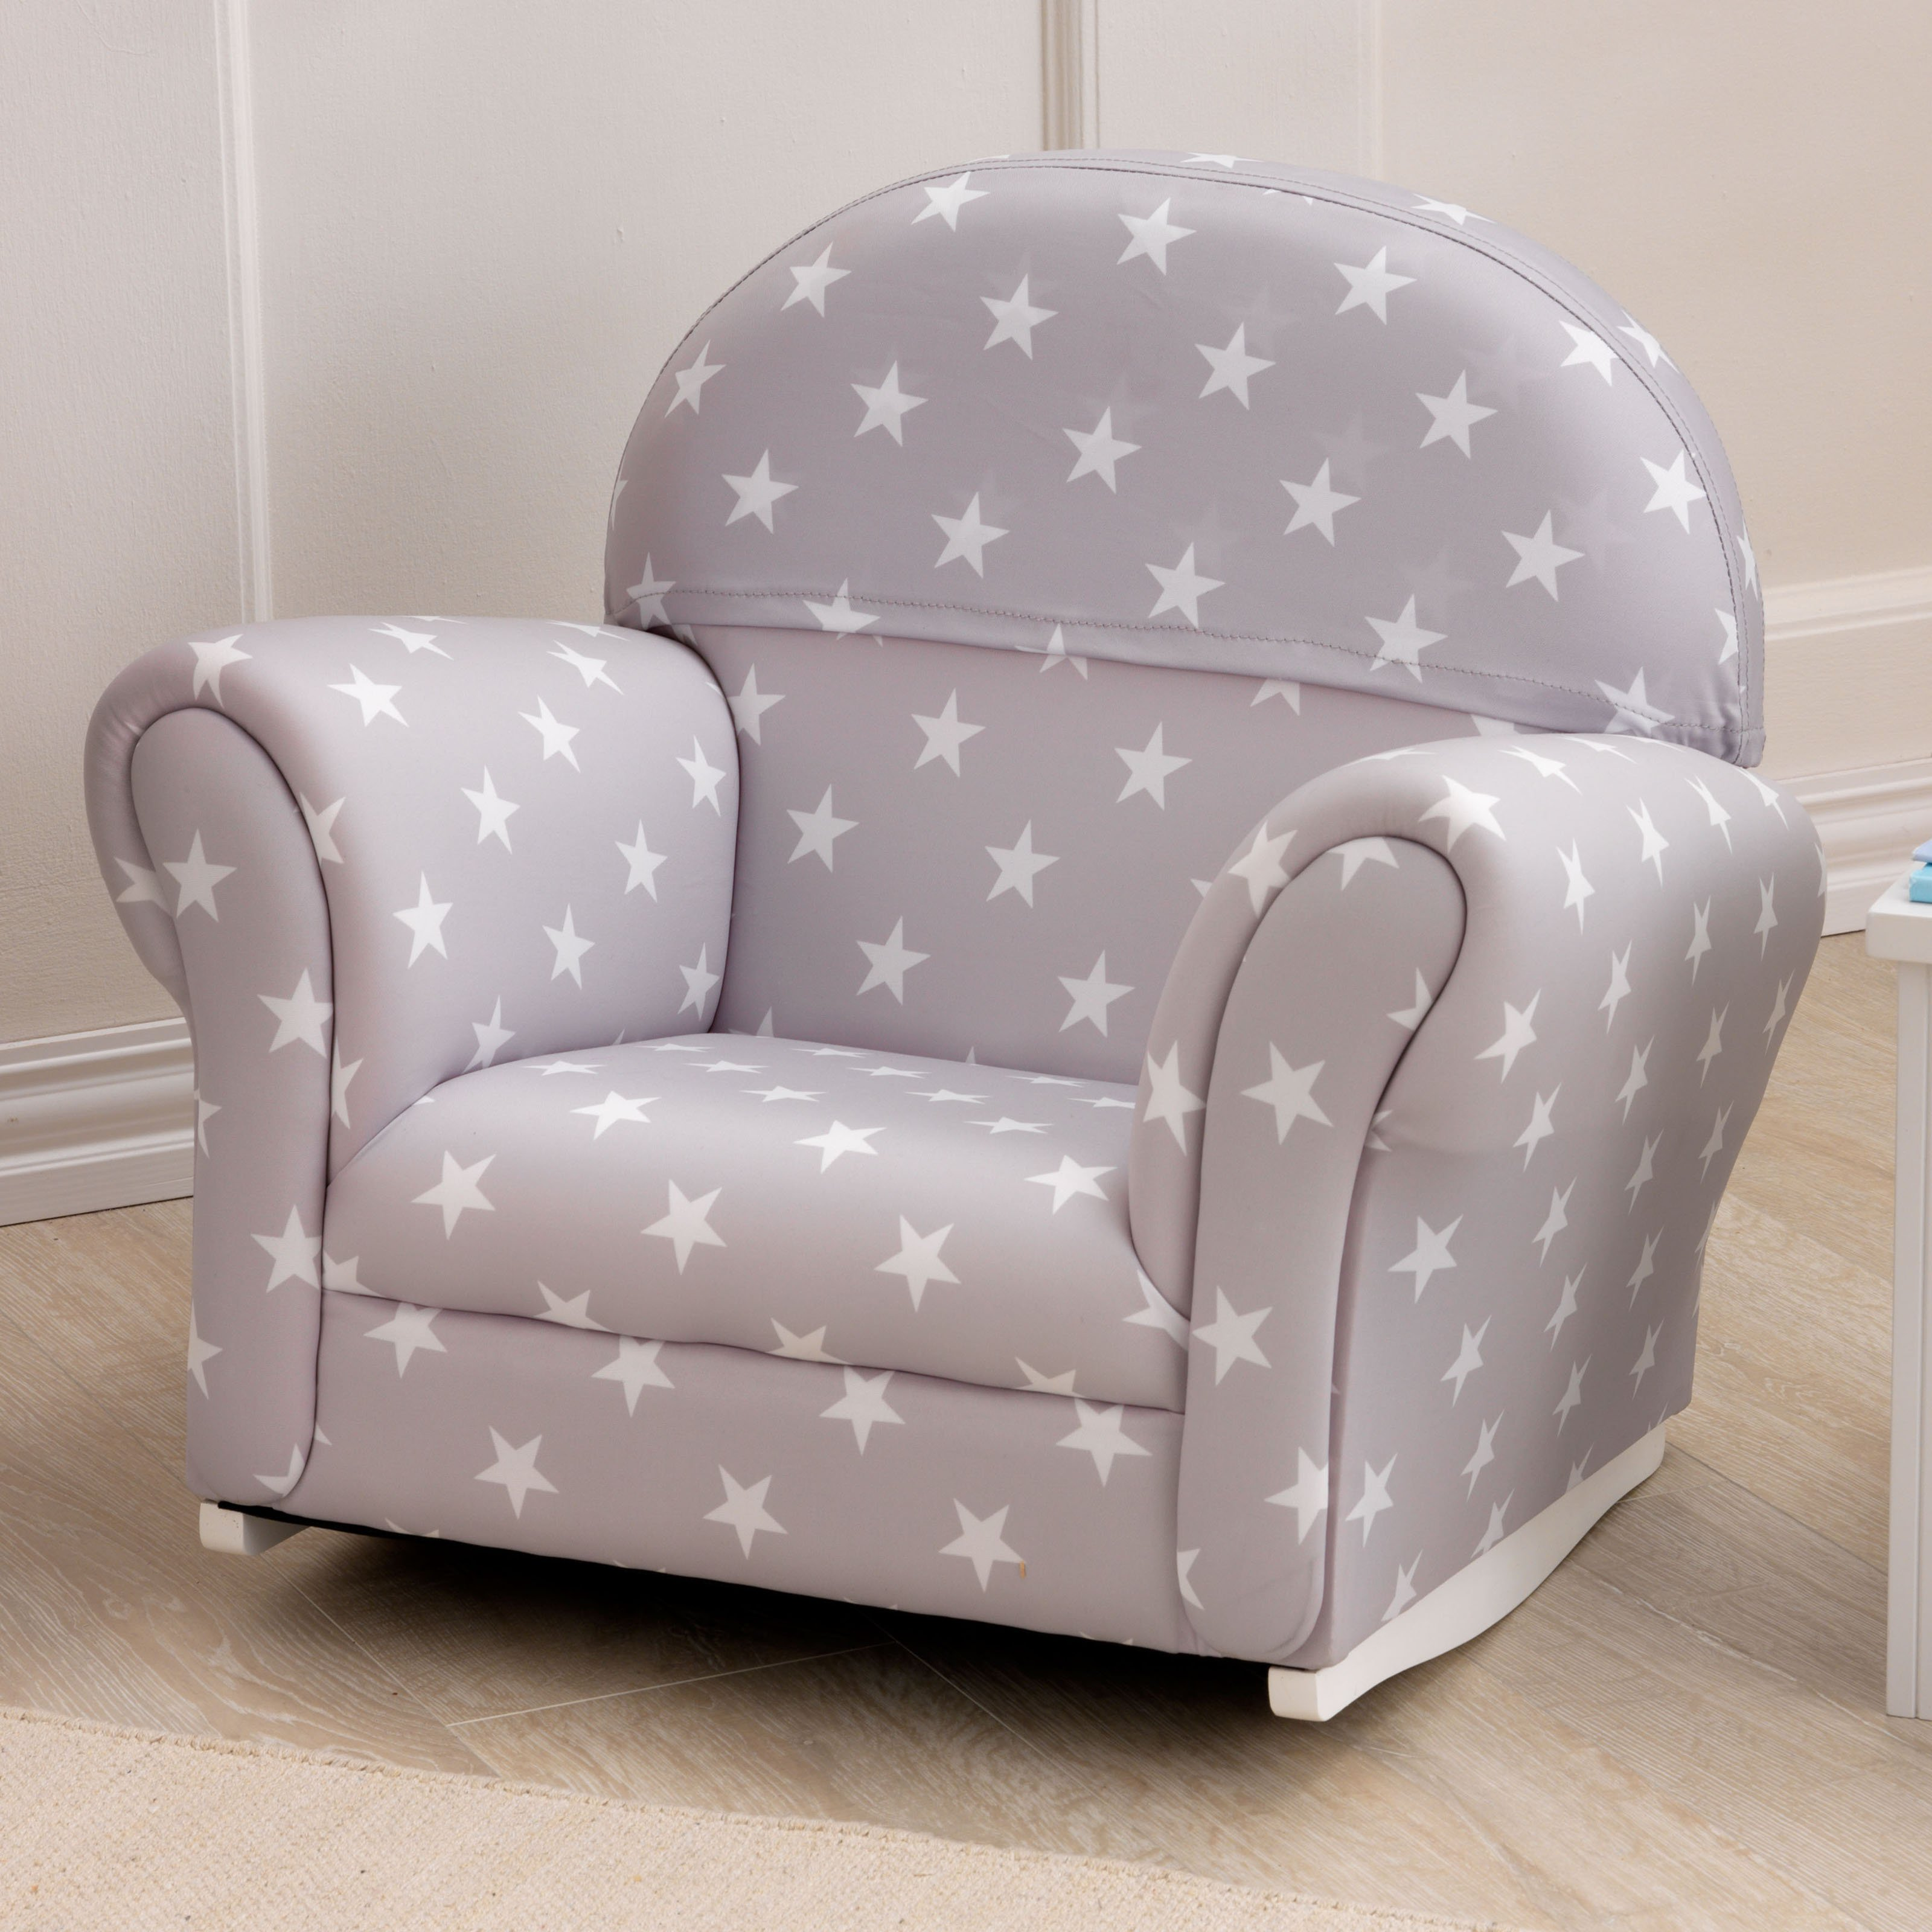 Toddler Chairs Upholstered Toddler Upholstered Chair The Best Chair Review Blog